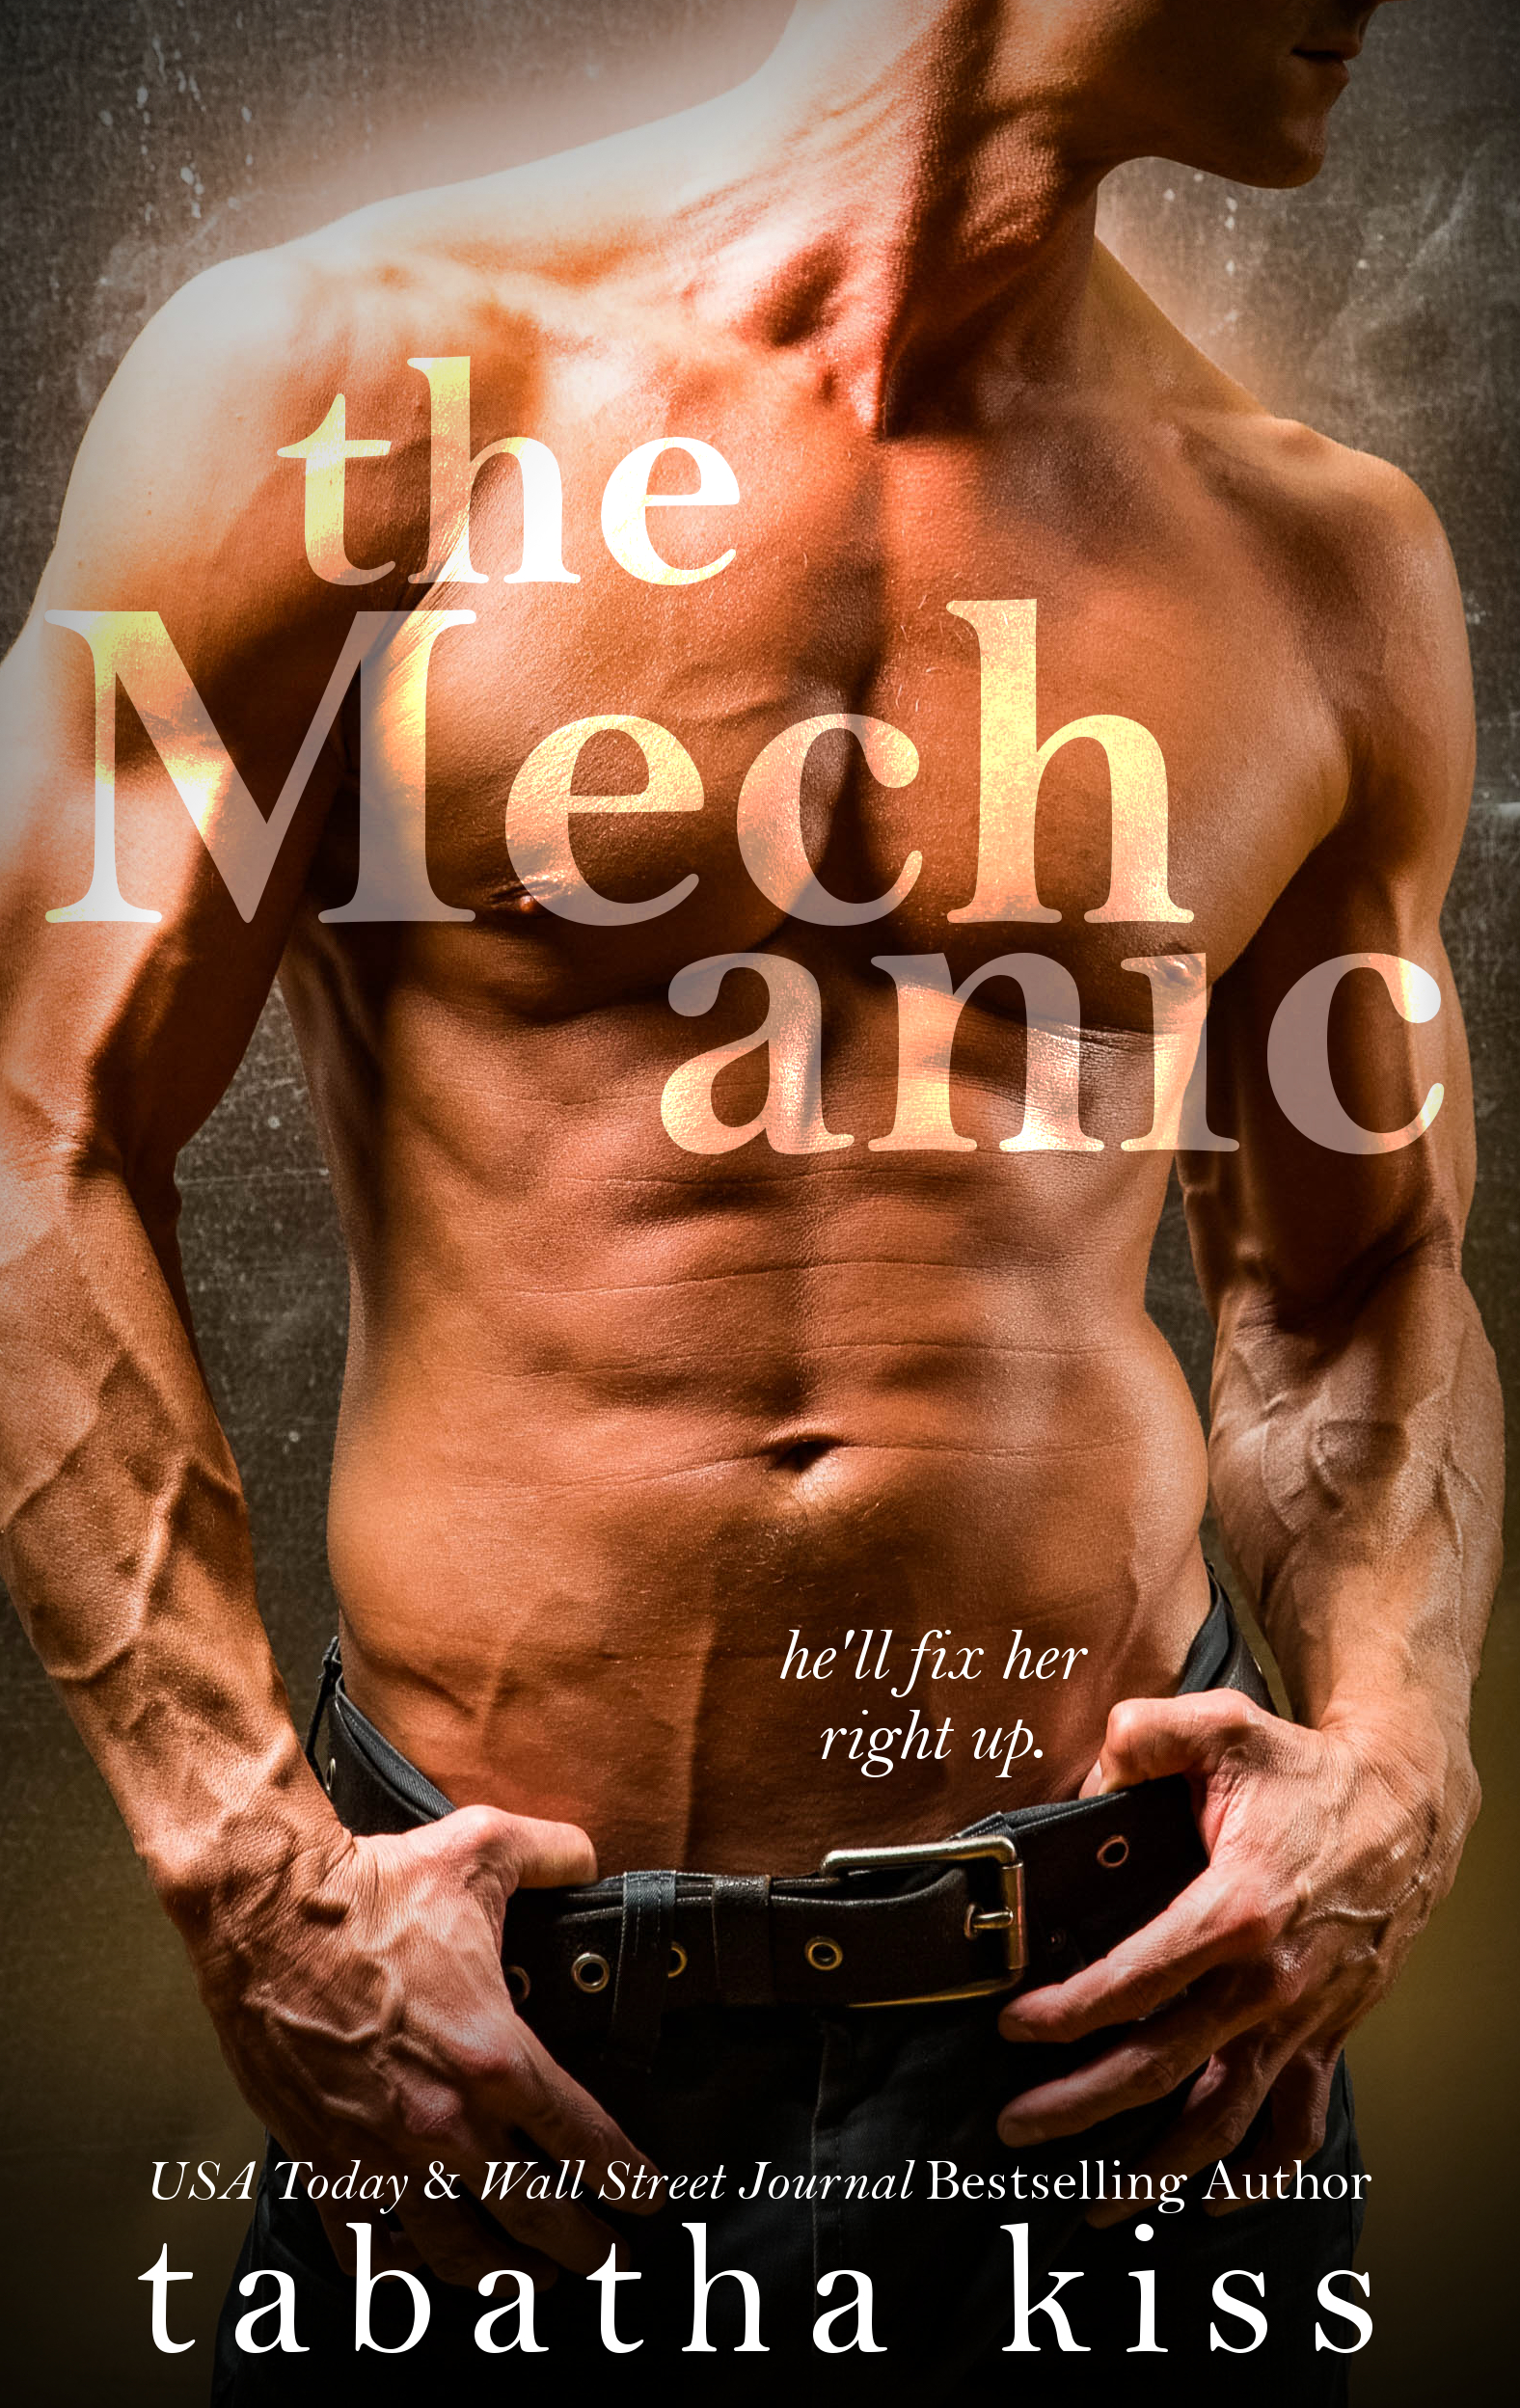 cover-themechanic